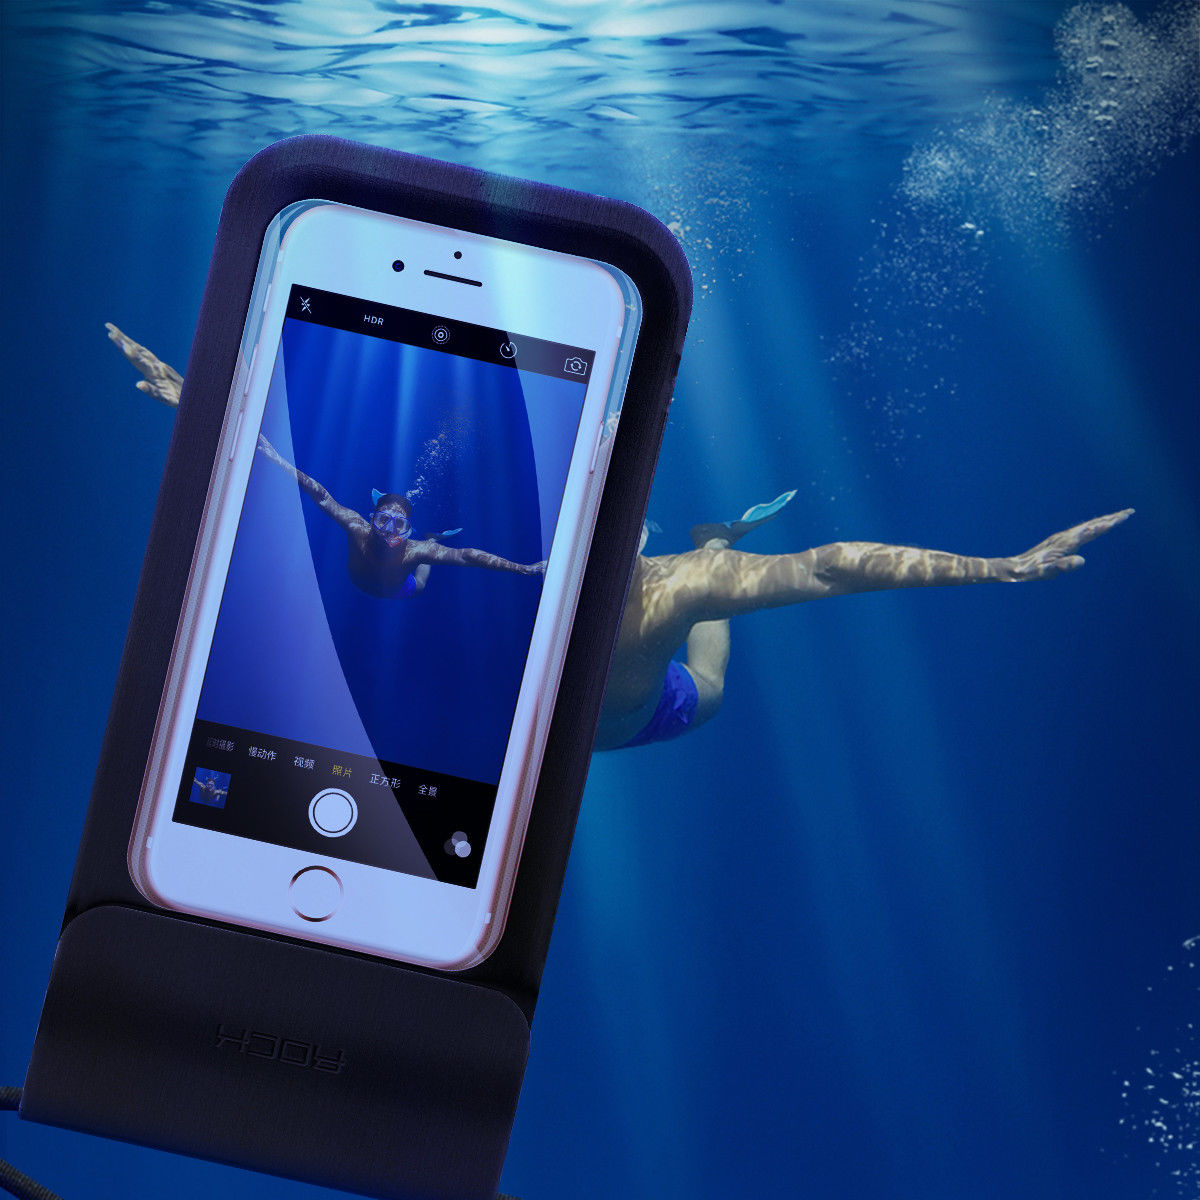 Universal Waterproof Case, ROCK Cellphone IPX8 Waterproof Underwater Phone Dry Bag Pouch with Neck Strap for iPhone X, 8 Plus/7/7 Plus/6S/6/6S Plus/5/5s/SE, - Black